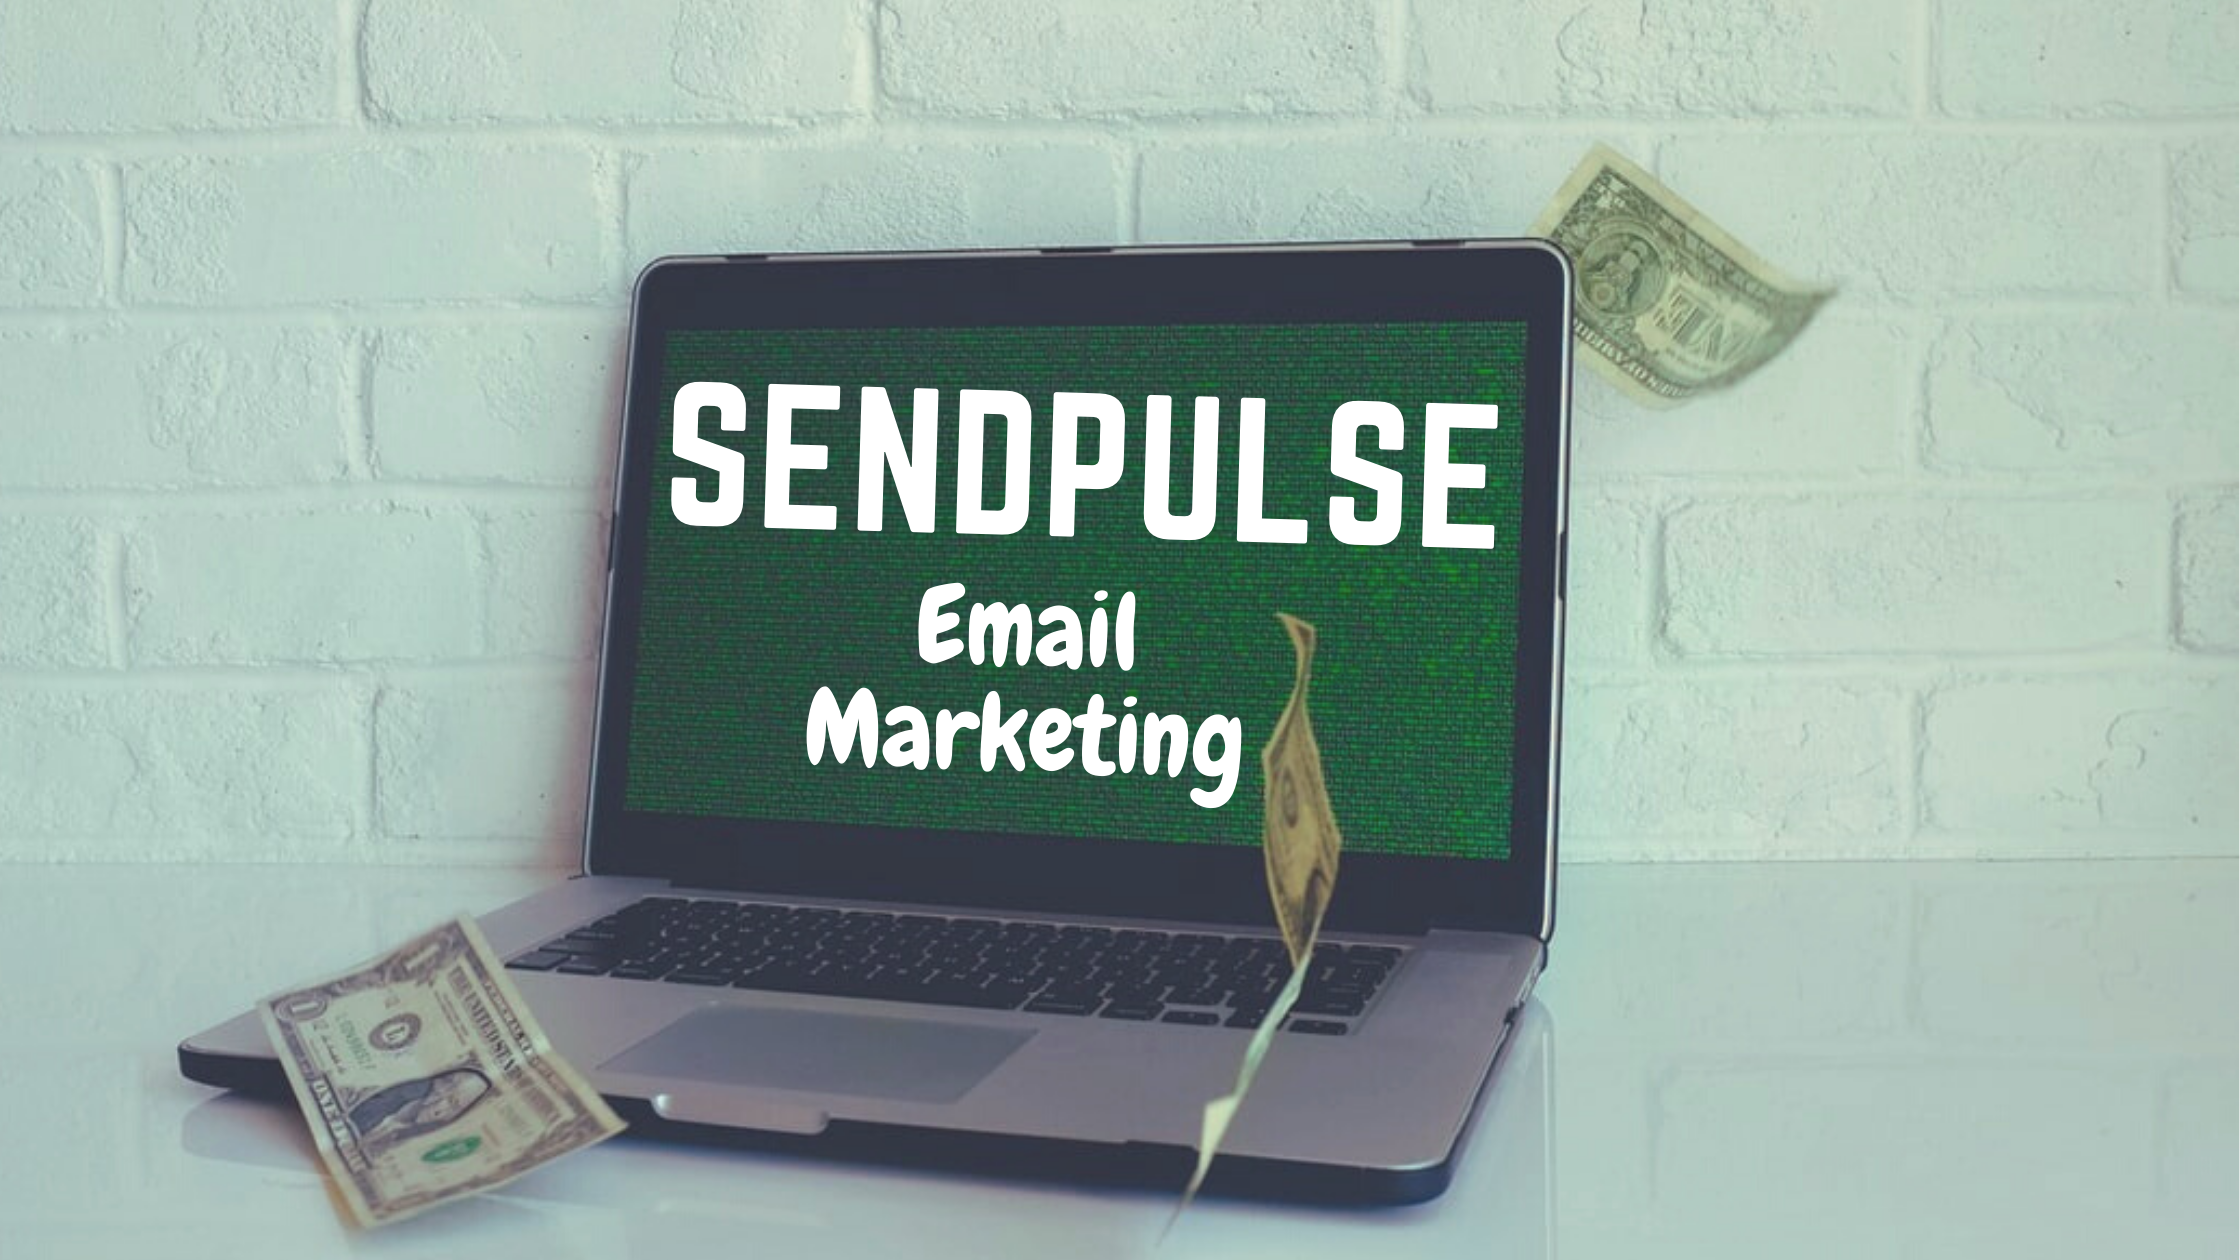 What is SendPulse Email Marketing